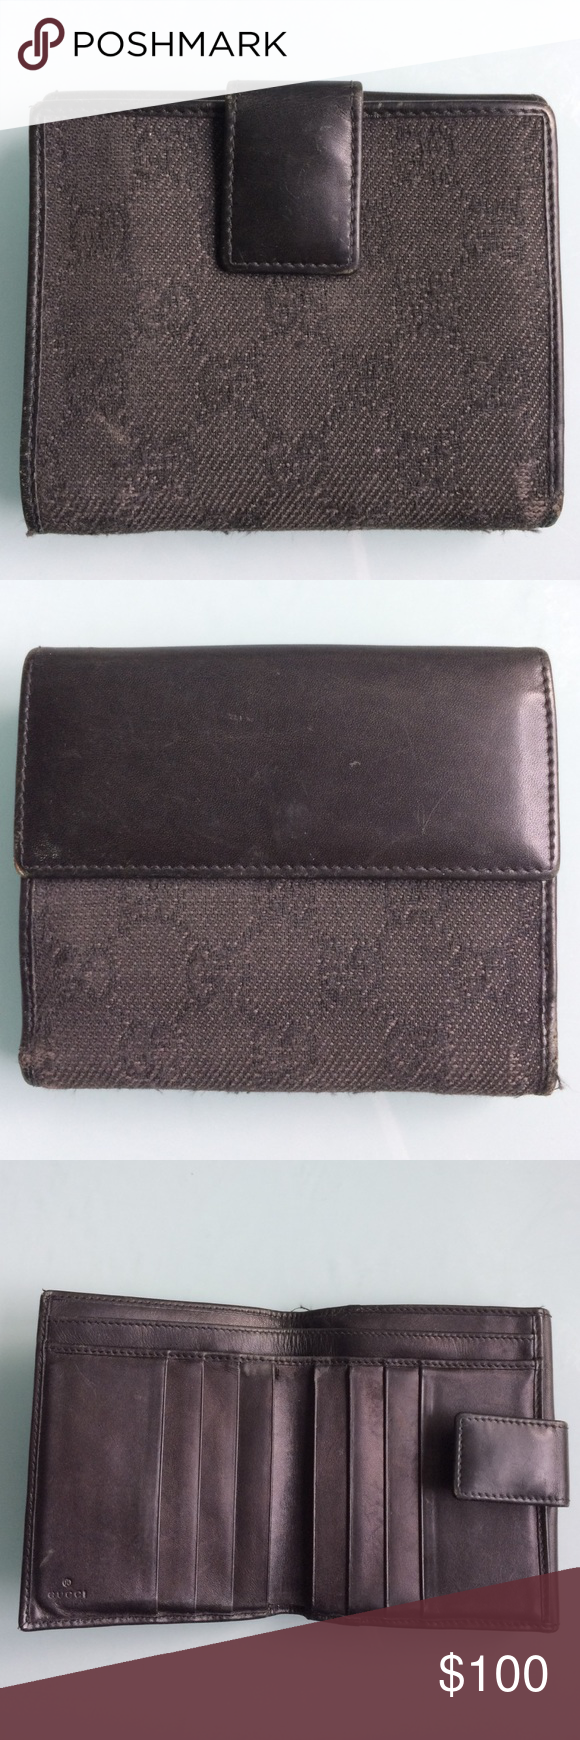 2a7e829d0df AUTHENTIC VINTAGE GUCCI WALLET AUTHENTIC GUCCI WALLET- Gucci pattern fabric  exterior with leather flap and leather interior. no box